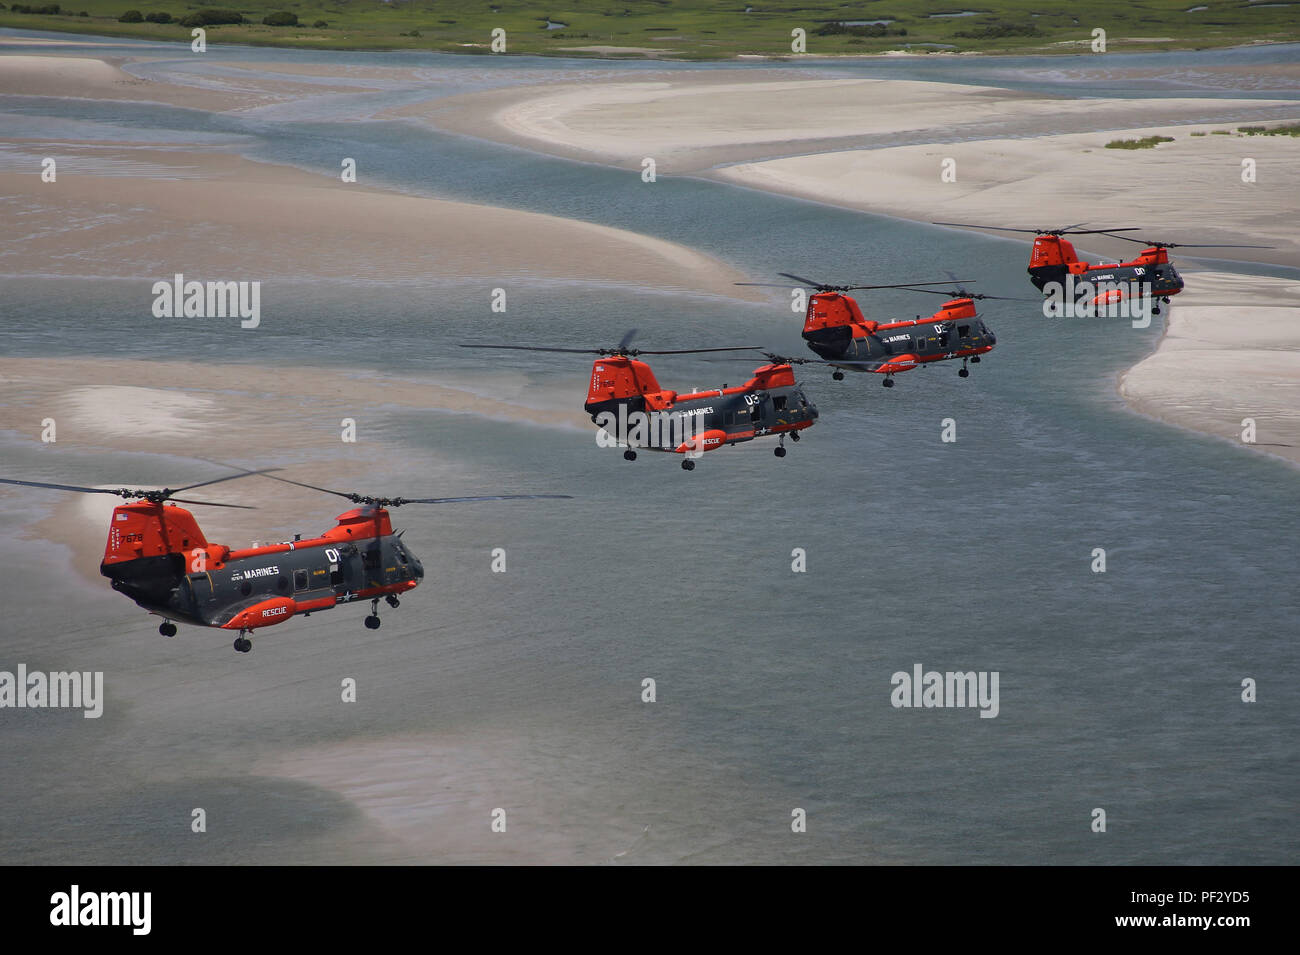 A flight of four HH-46D Seaknight helicopters make one of their final formation flights over North Carolina's Outer Banks in August 2015, weeks before the Marine Corps turned the aircraft over to the Navy as the Corps' ended its search and rescue mission.  The helicopters were a familiar sight in Eastern North Carolina skies for decades as Marine Transport Squadron 1 conducted SAR and medical transport flights for both military and civilian emergencies, including the rescue of 399 people directly threatened by flood after Hurricane Floyd washed through eastern North Carolina in September 1999. - Stock Image